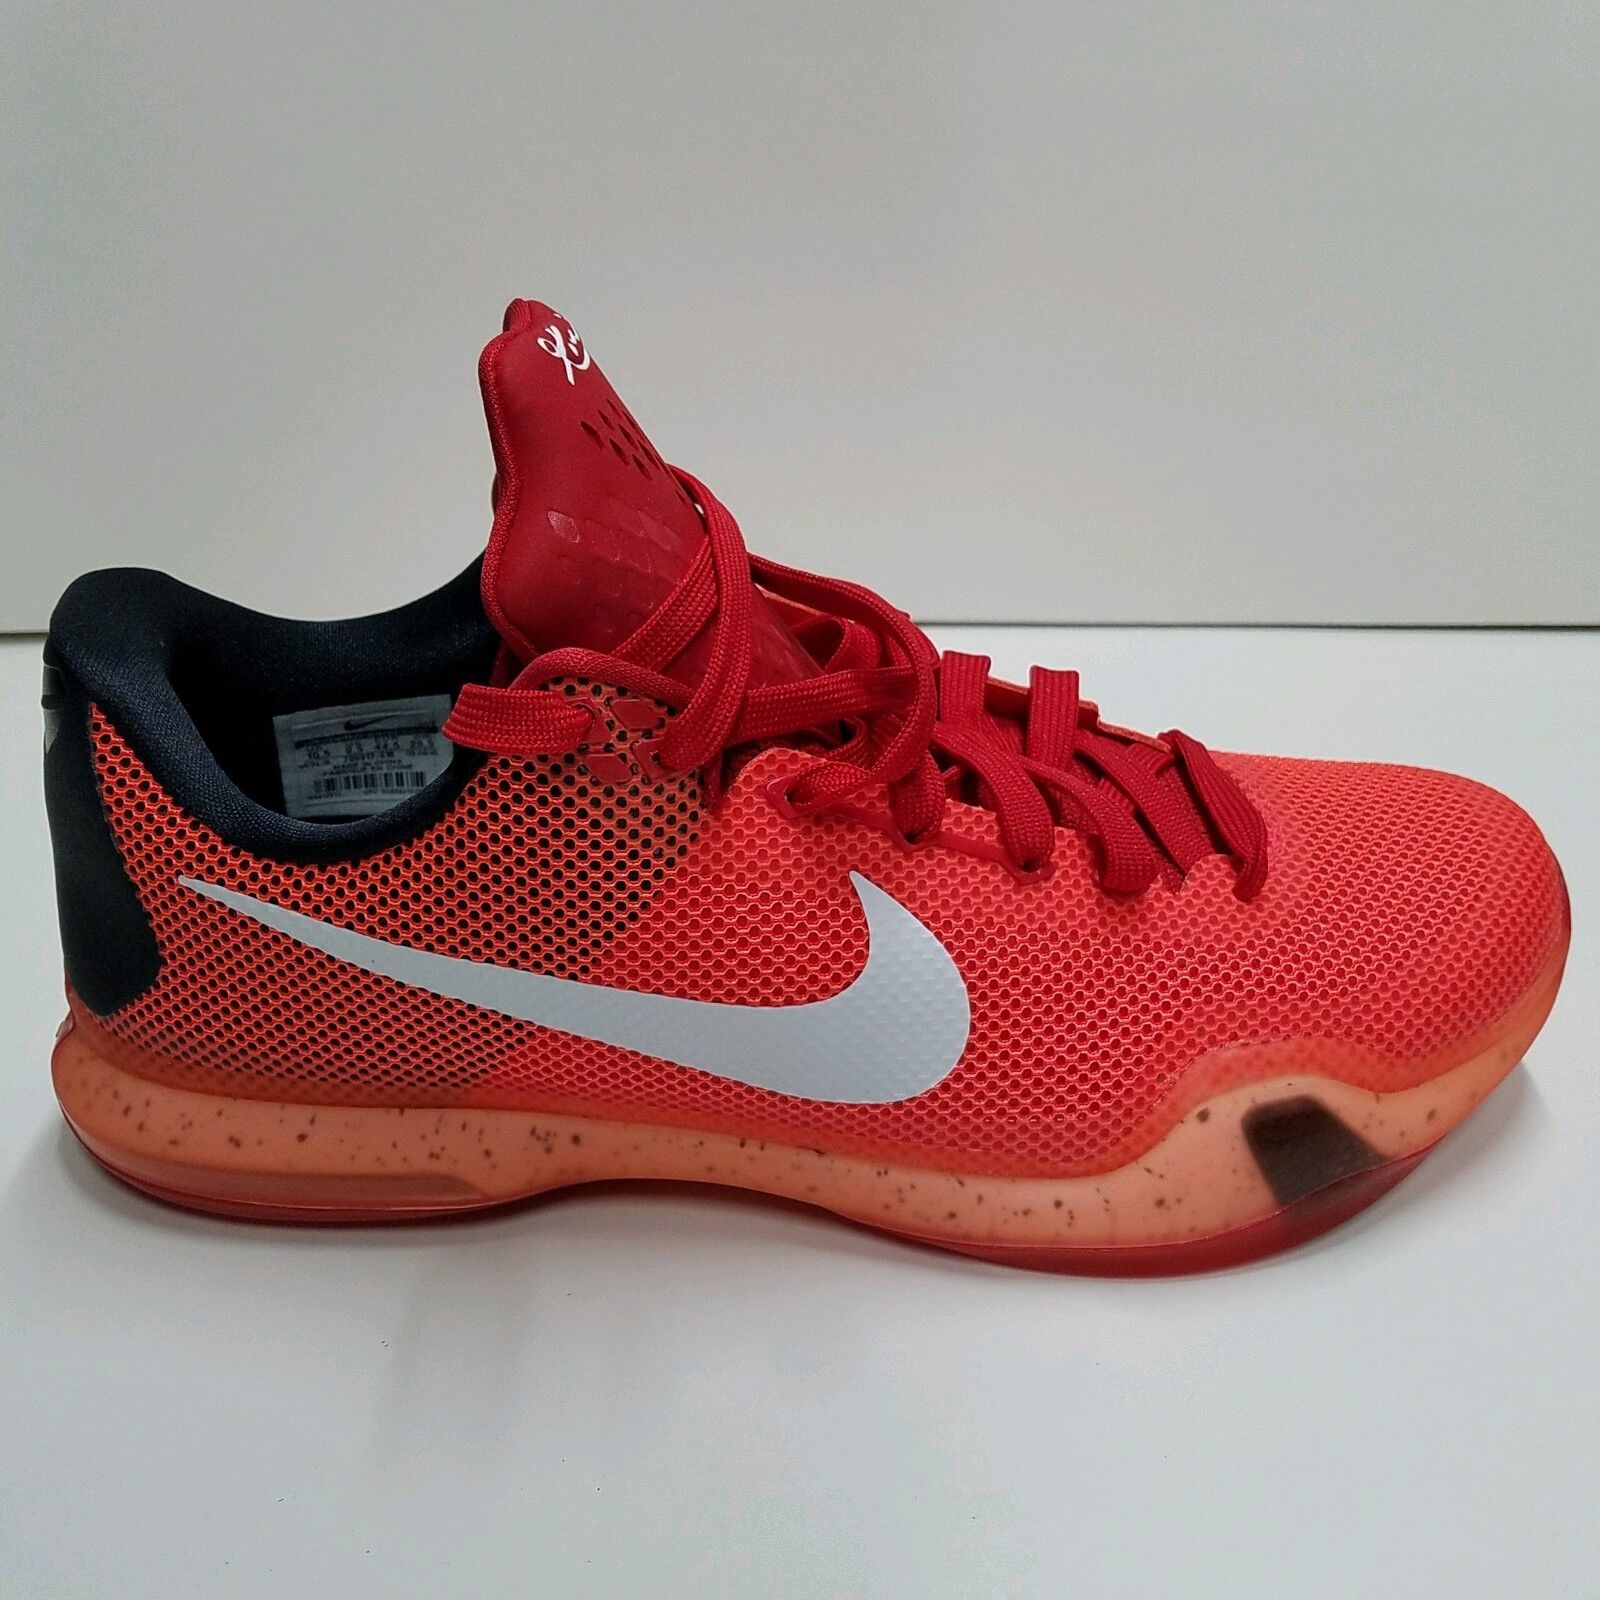 "NIKE KOBE 10 X Elite Low ""BRIGHT CRIMSON"" FLYKNIT BASKETBALL SHOES Men Sz 10.5"